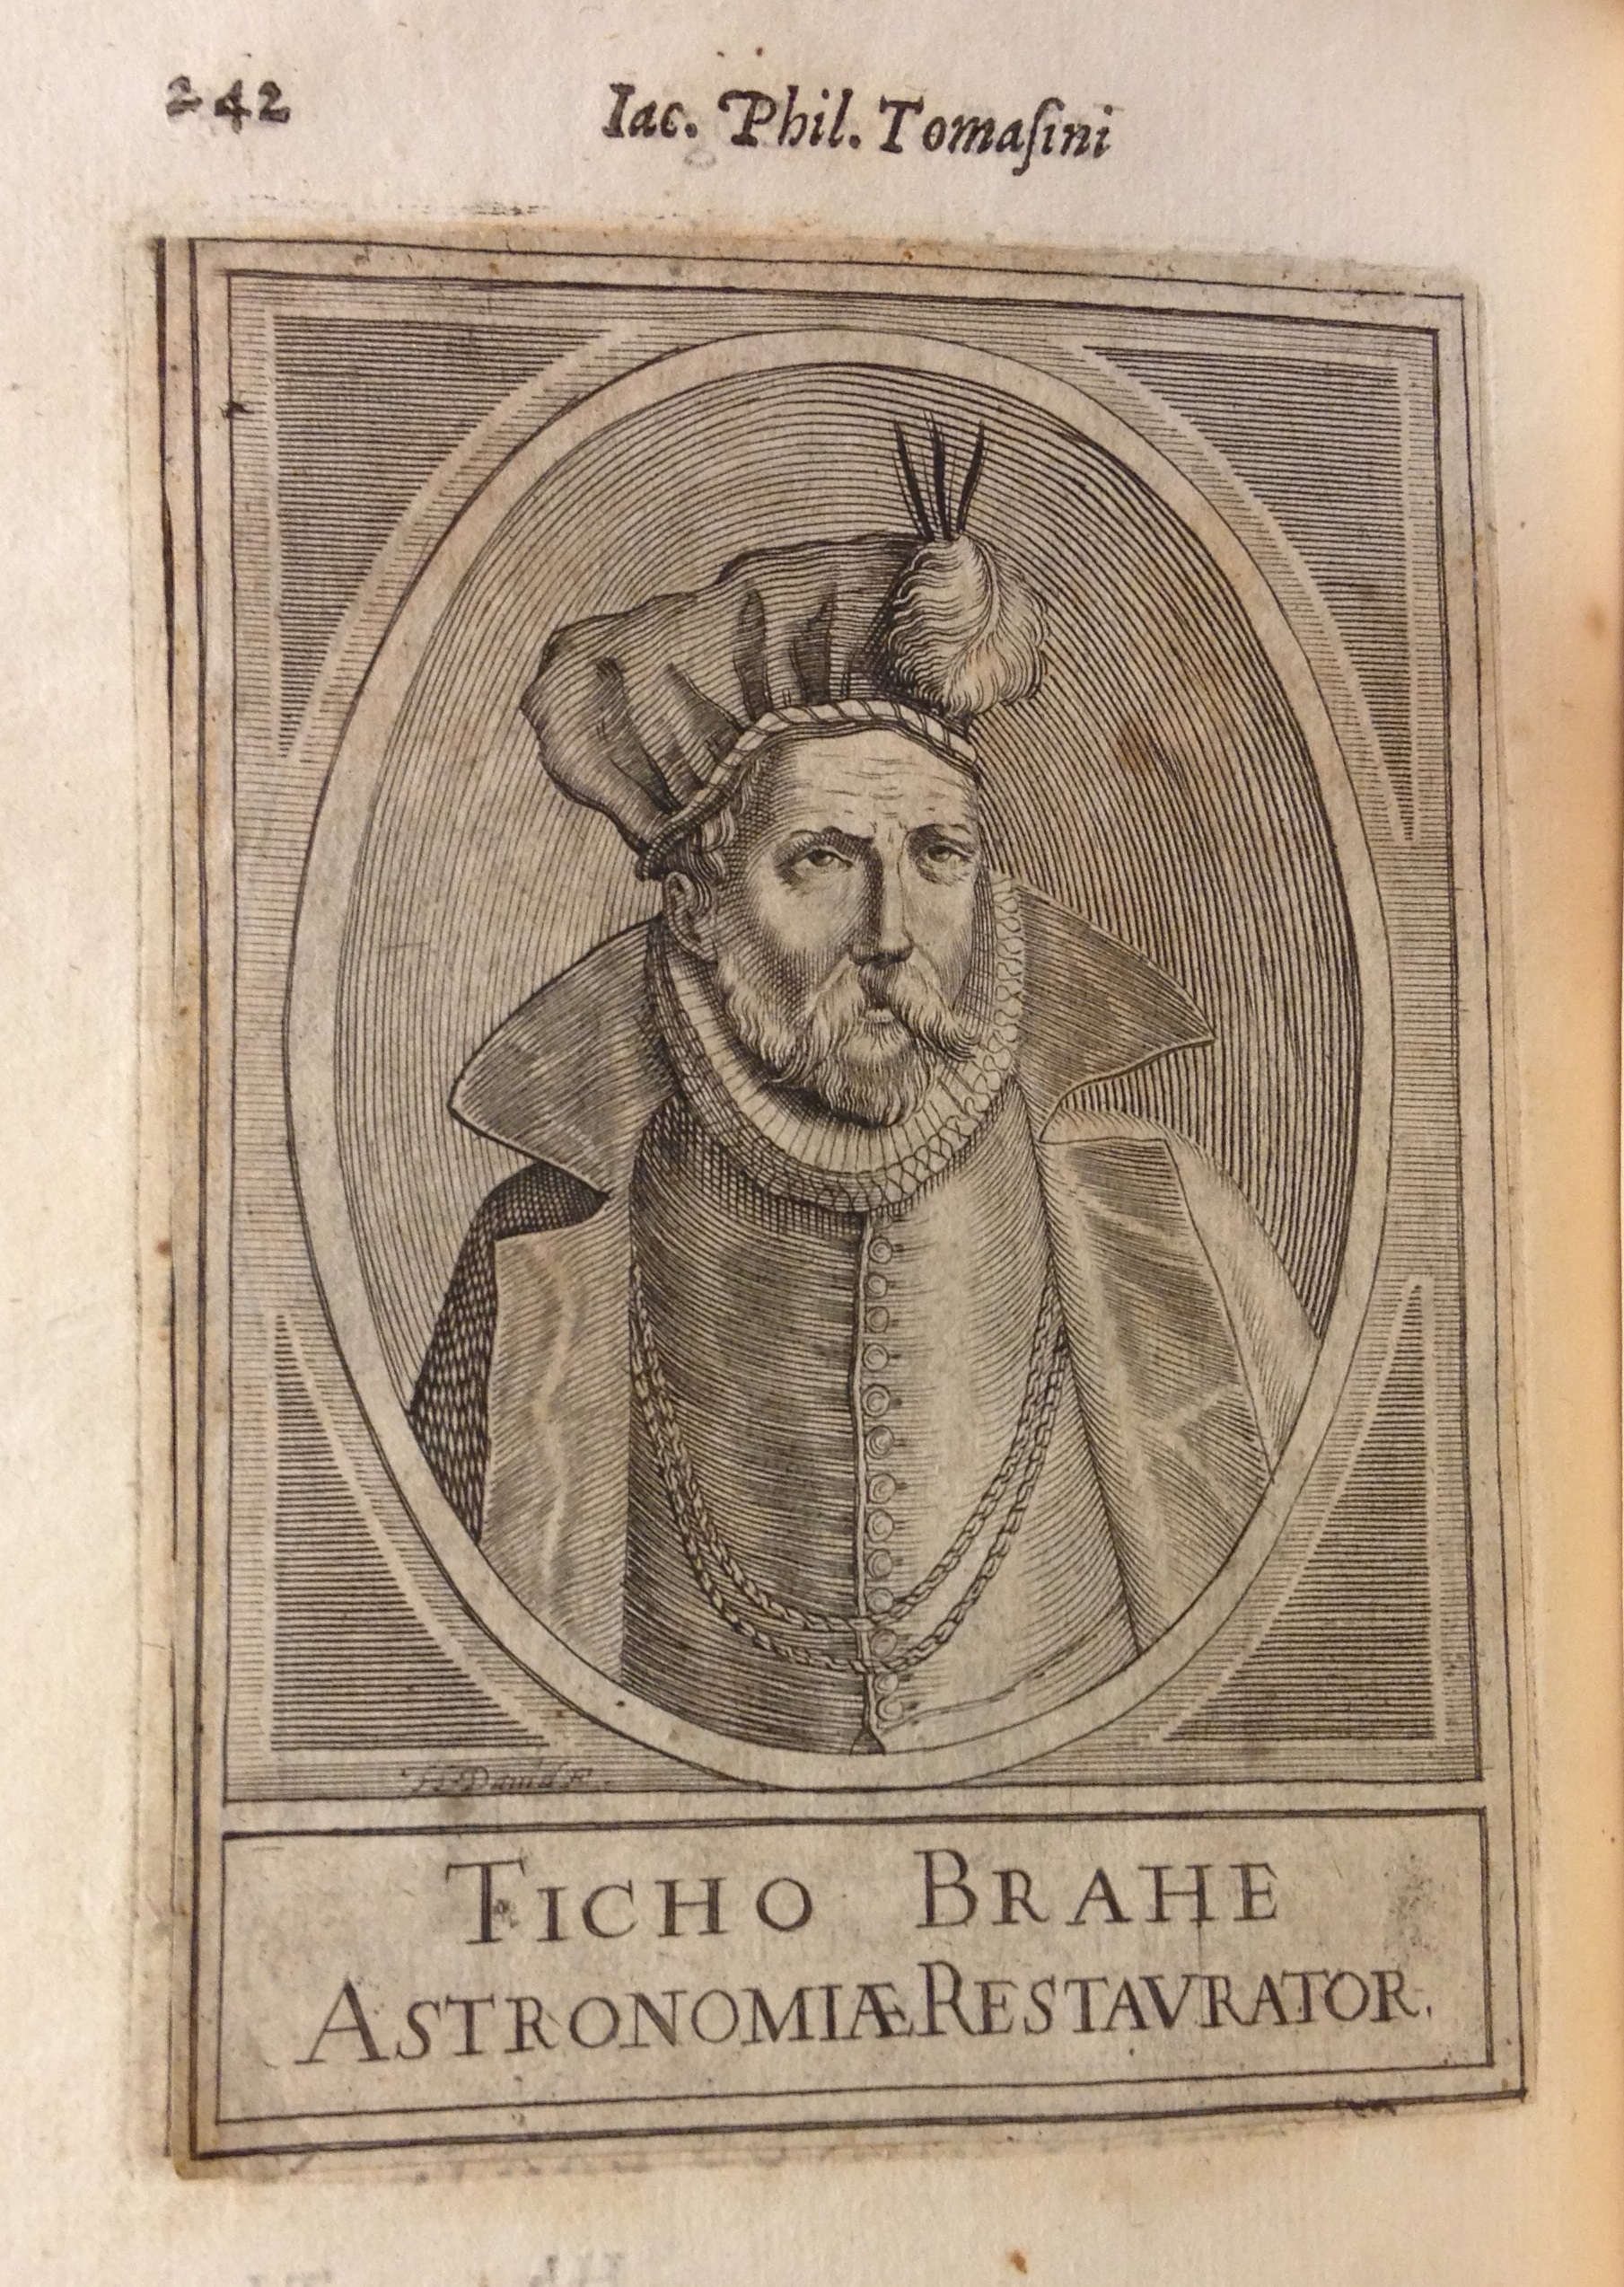 A stellar eclipse! This engraved portrait of astronomer Tycho Brahe is actually a cancel slip pasted over another engraved portrait inadvertently printed on the wrong leaf. Note how the lower left corner is lifting upward, and the engraved border of the underlying portrait visible at left. Giacomo Filippo Tomasini, Illustrium virorum elogia iconibus illustrata (Padua, 1630), p. 242.   (CT1122 .T6 1630)